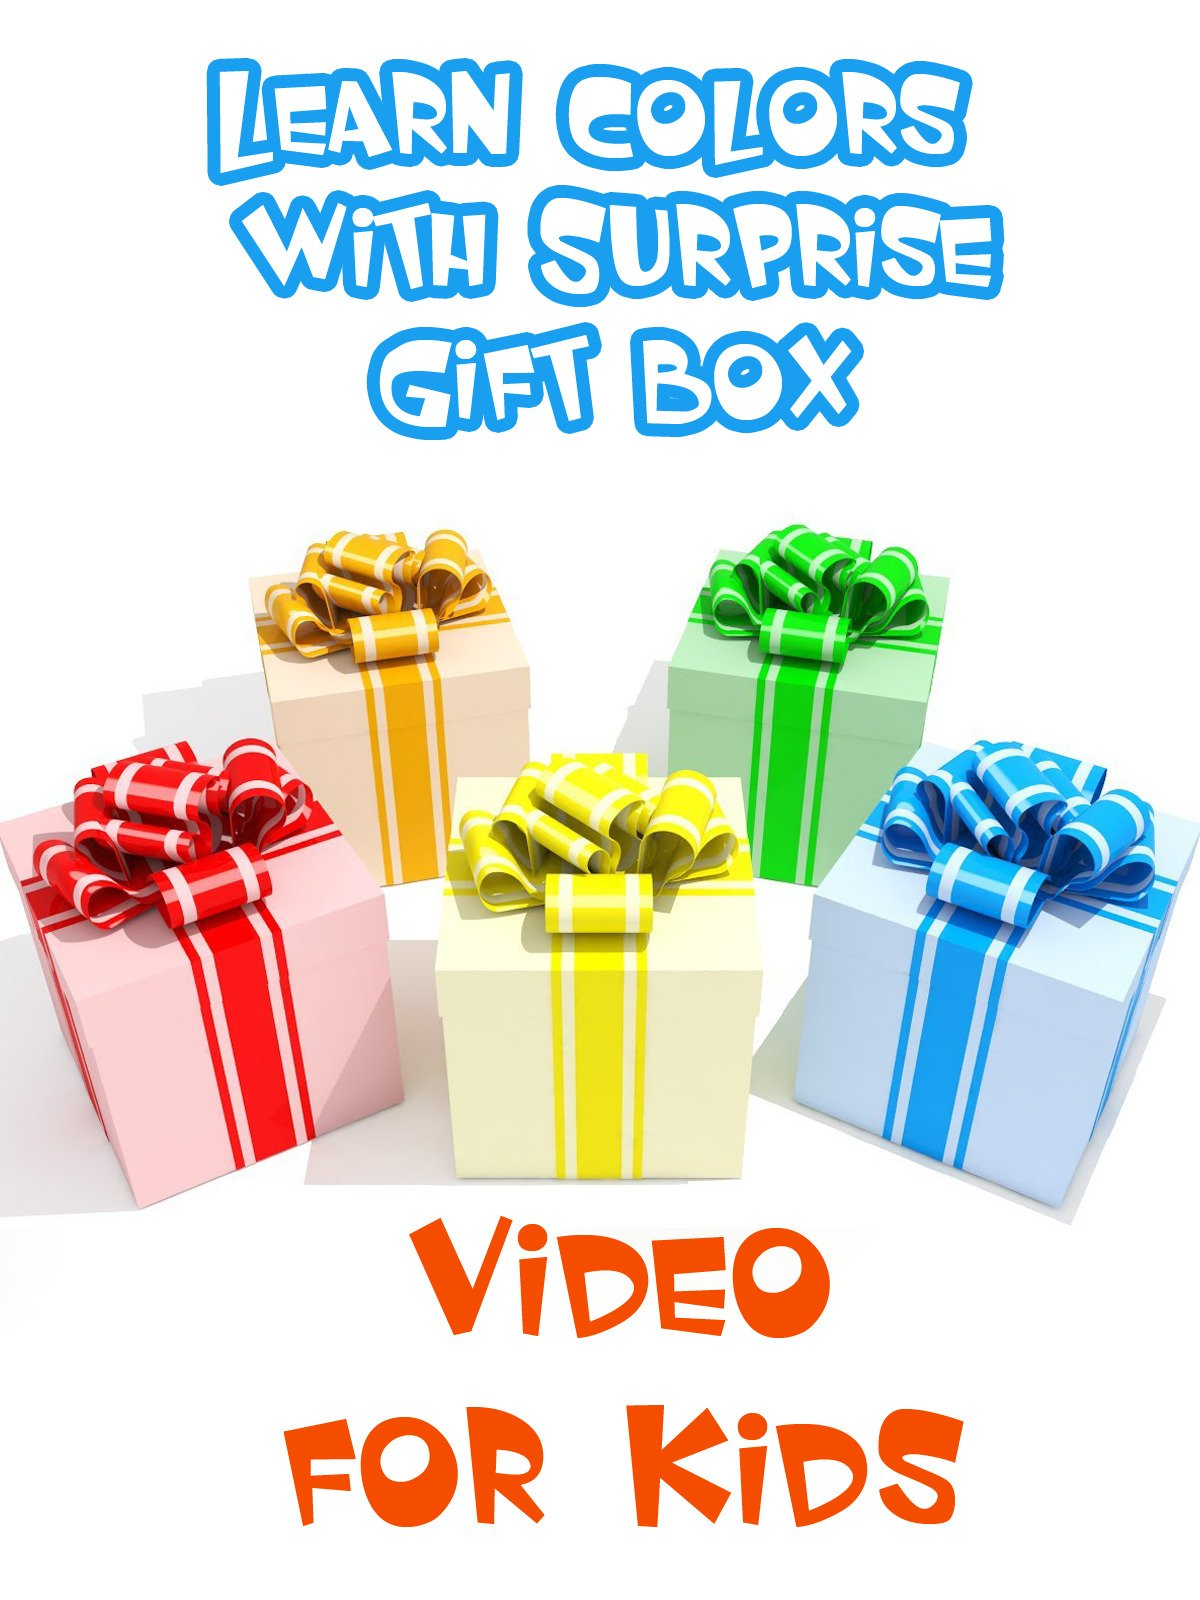 Learn Colors with Surprise Gift Box